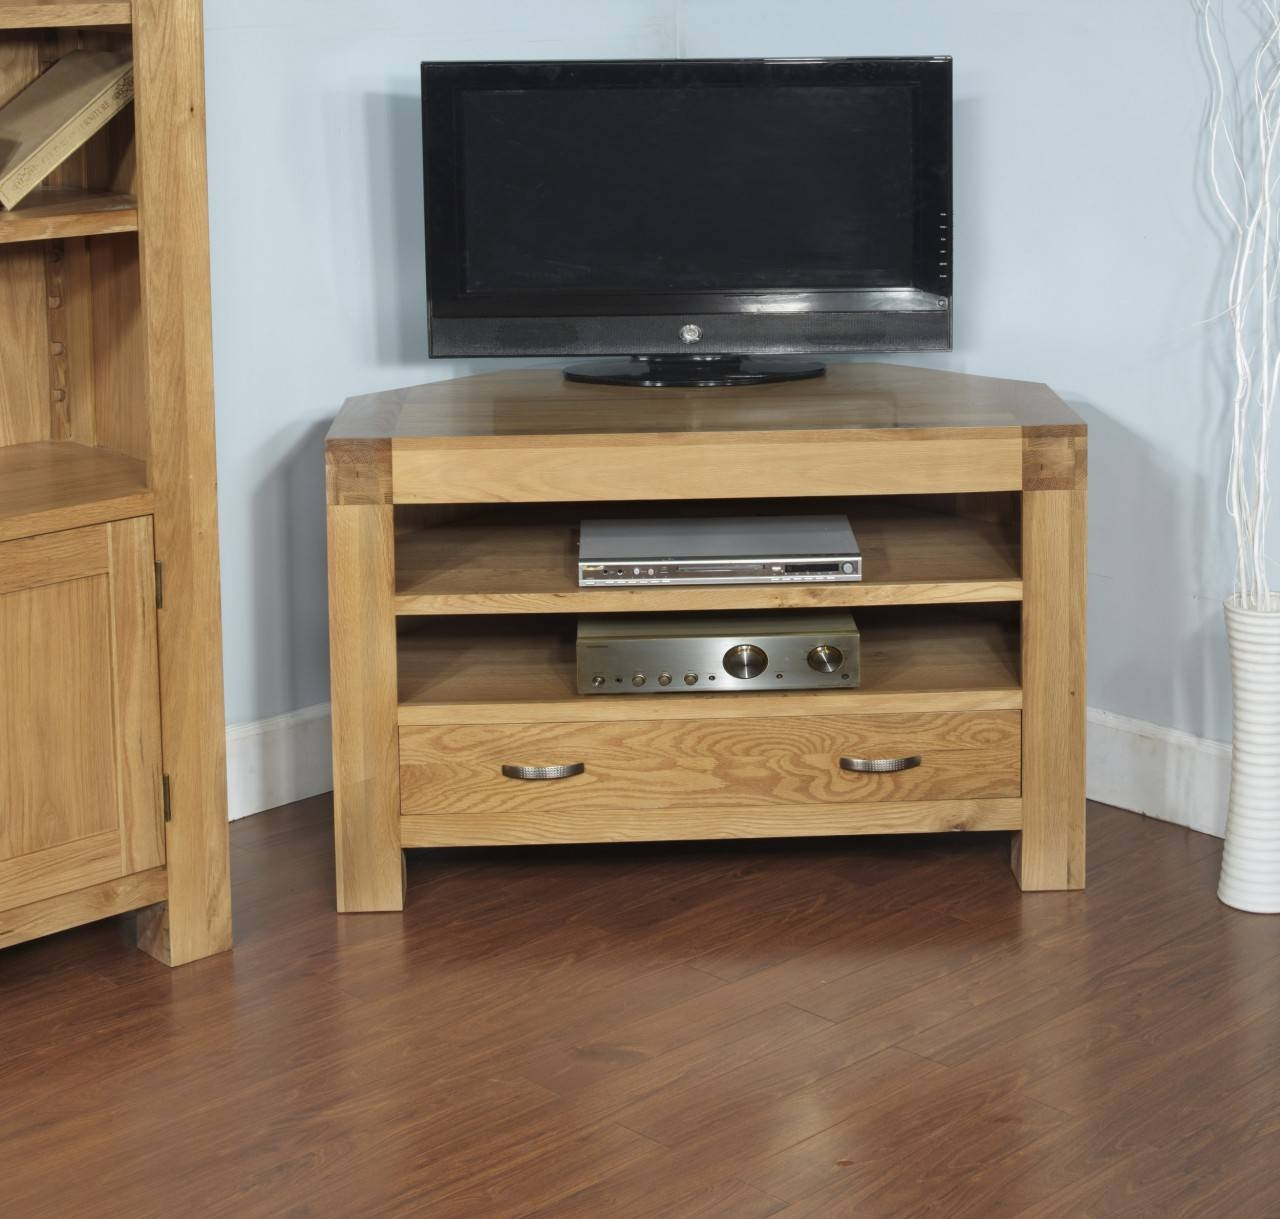 Rivermead Solid Oak Modern Furniture Widescreen Corner Tv Cabinet pertaining to Solid Wood Corner Tv Cabinets (Image 11 of 15)